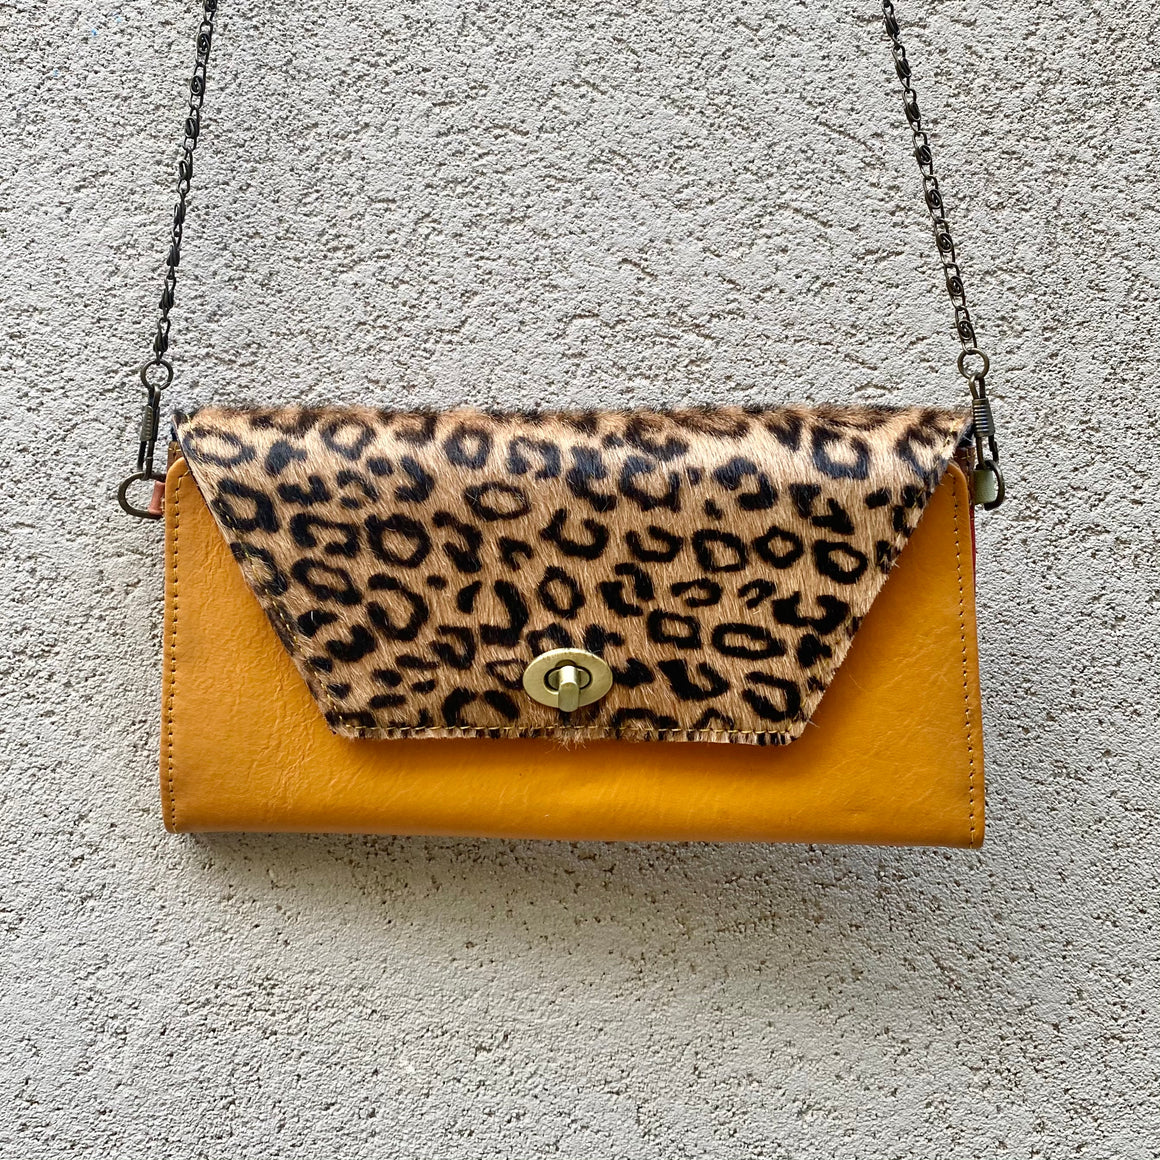 Harley Cowhide and Leather Crossbody Wallet Clutch - Leopard, Dark Tan - KITTY KAT